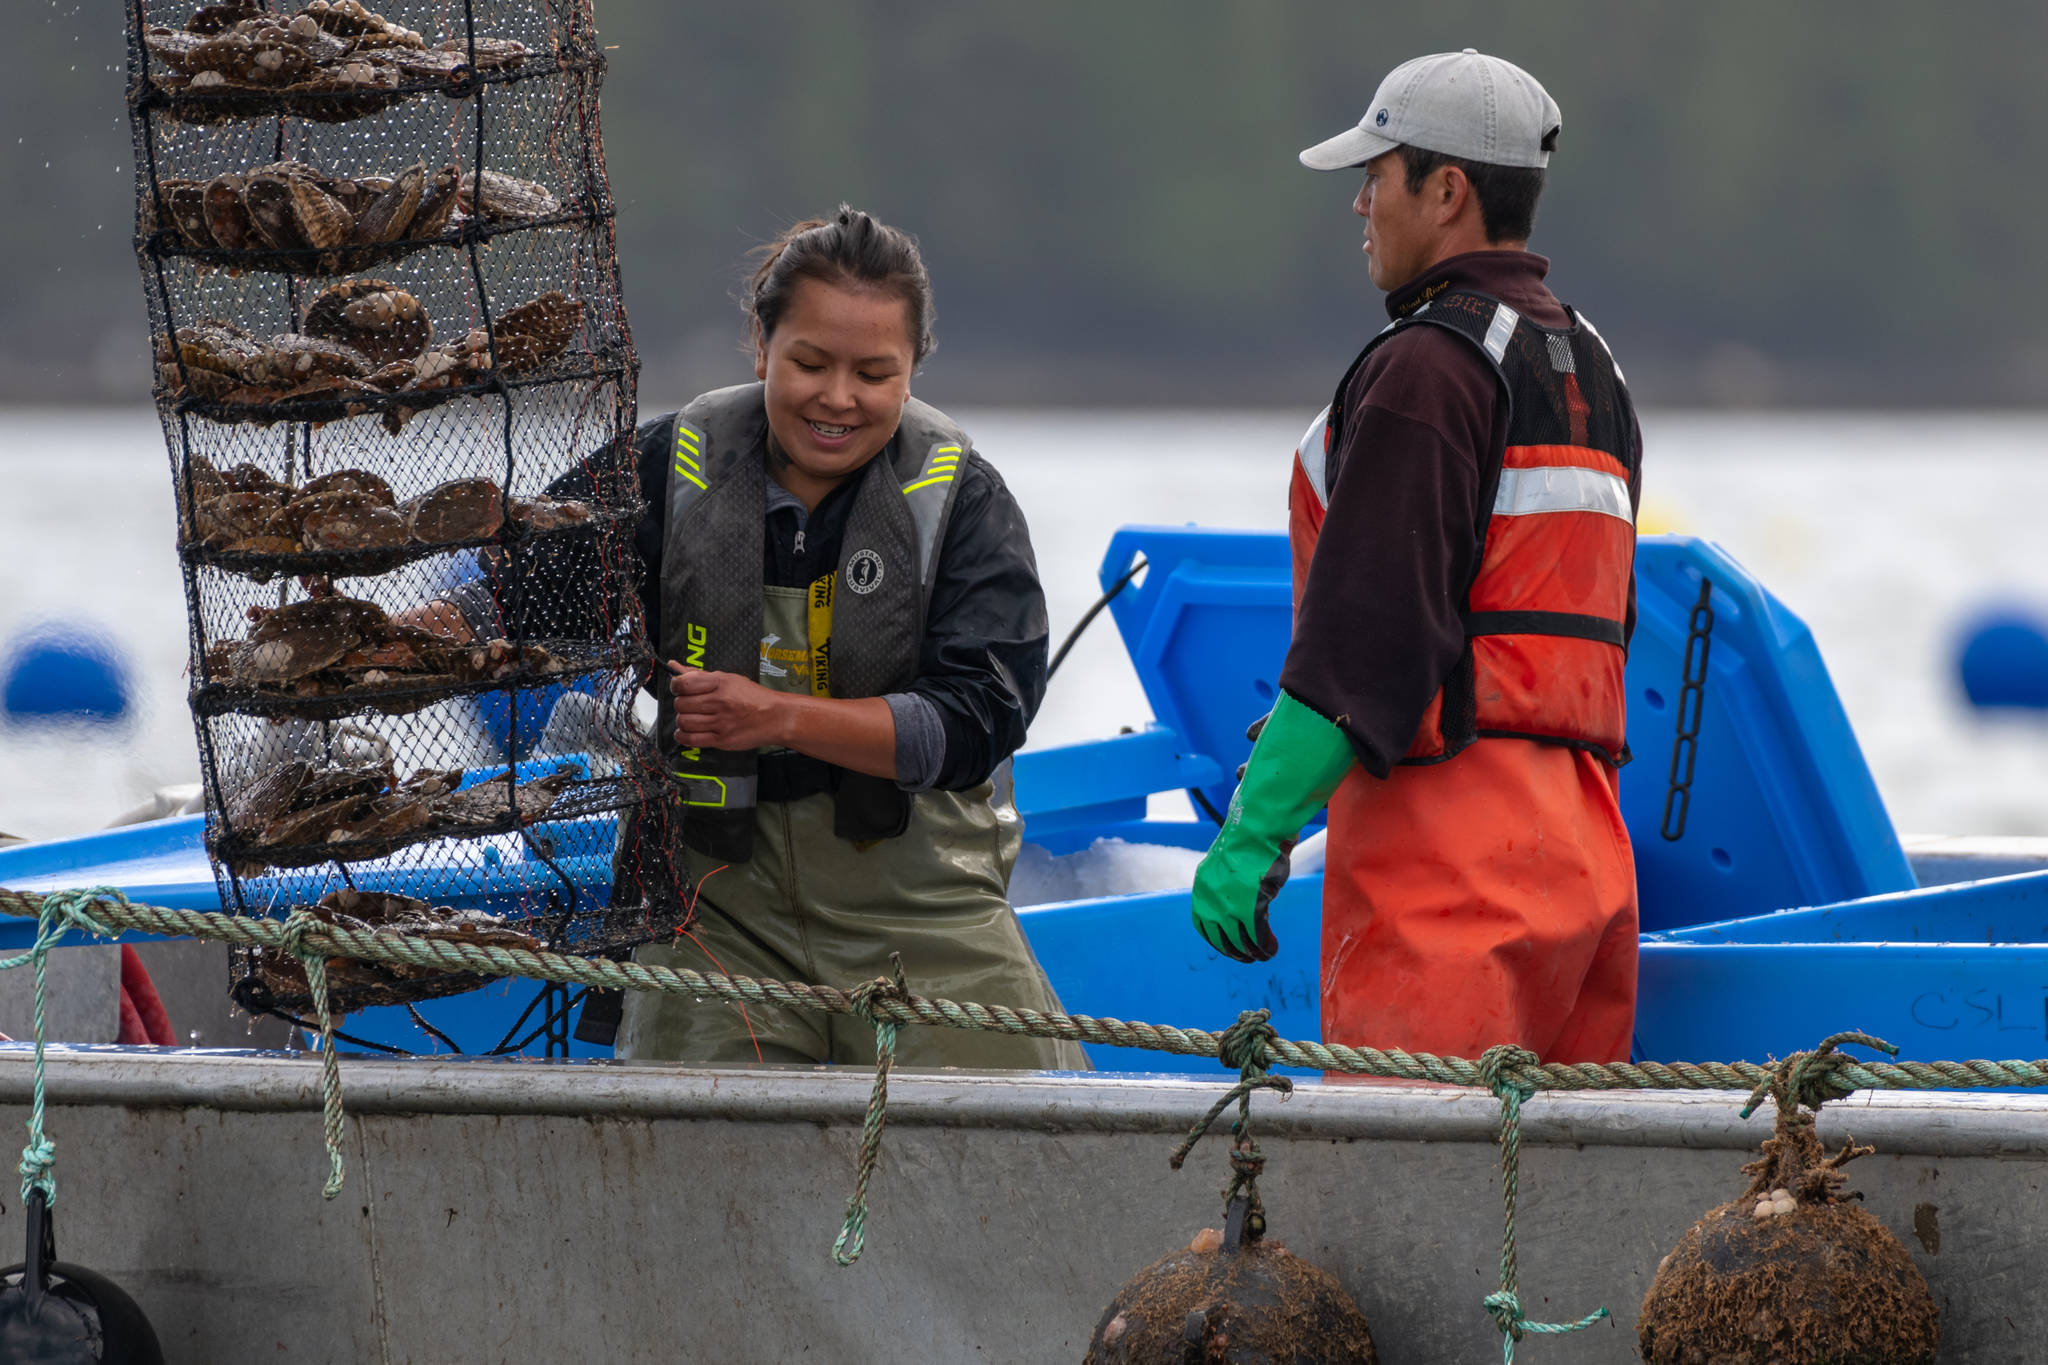 Coastal Shellfish employees Patricia Lewis and Yota Kano harvest Great Bear Scallops near Prince Rupert, B.C. After less than two years of commercial operation, the Metlakatla First Nations-owned company won the 2020 BC Food and Beverage Sustainability Award Sept. 24 from the BC Food Processors Association. (Photo supplied by Coastal Shellfish)